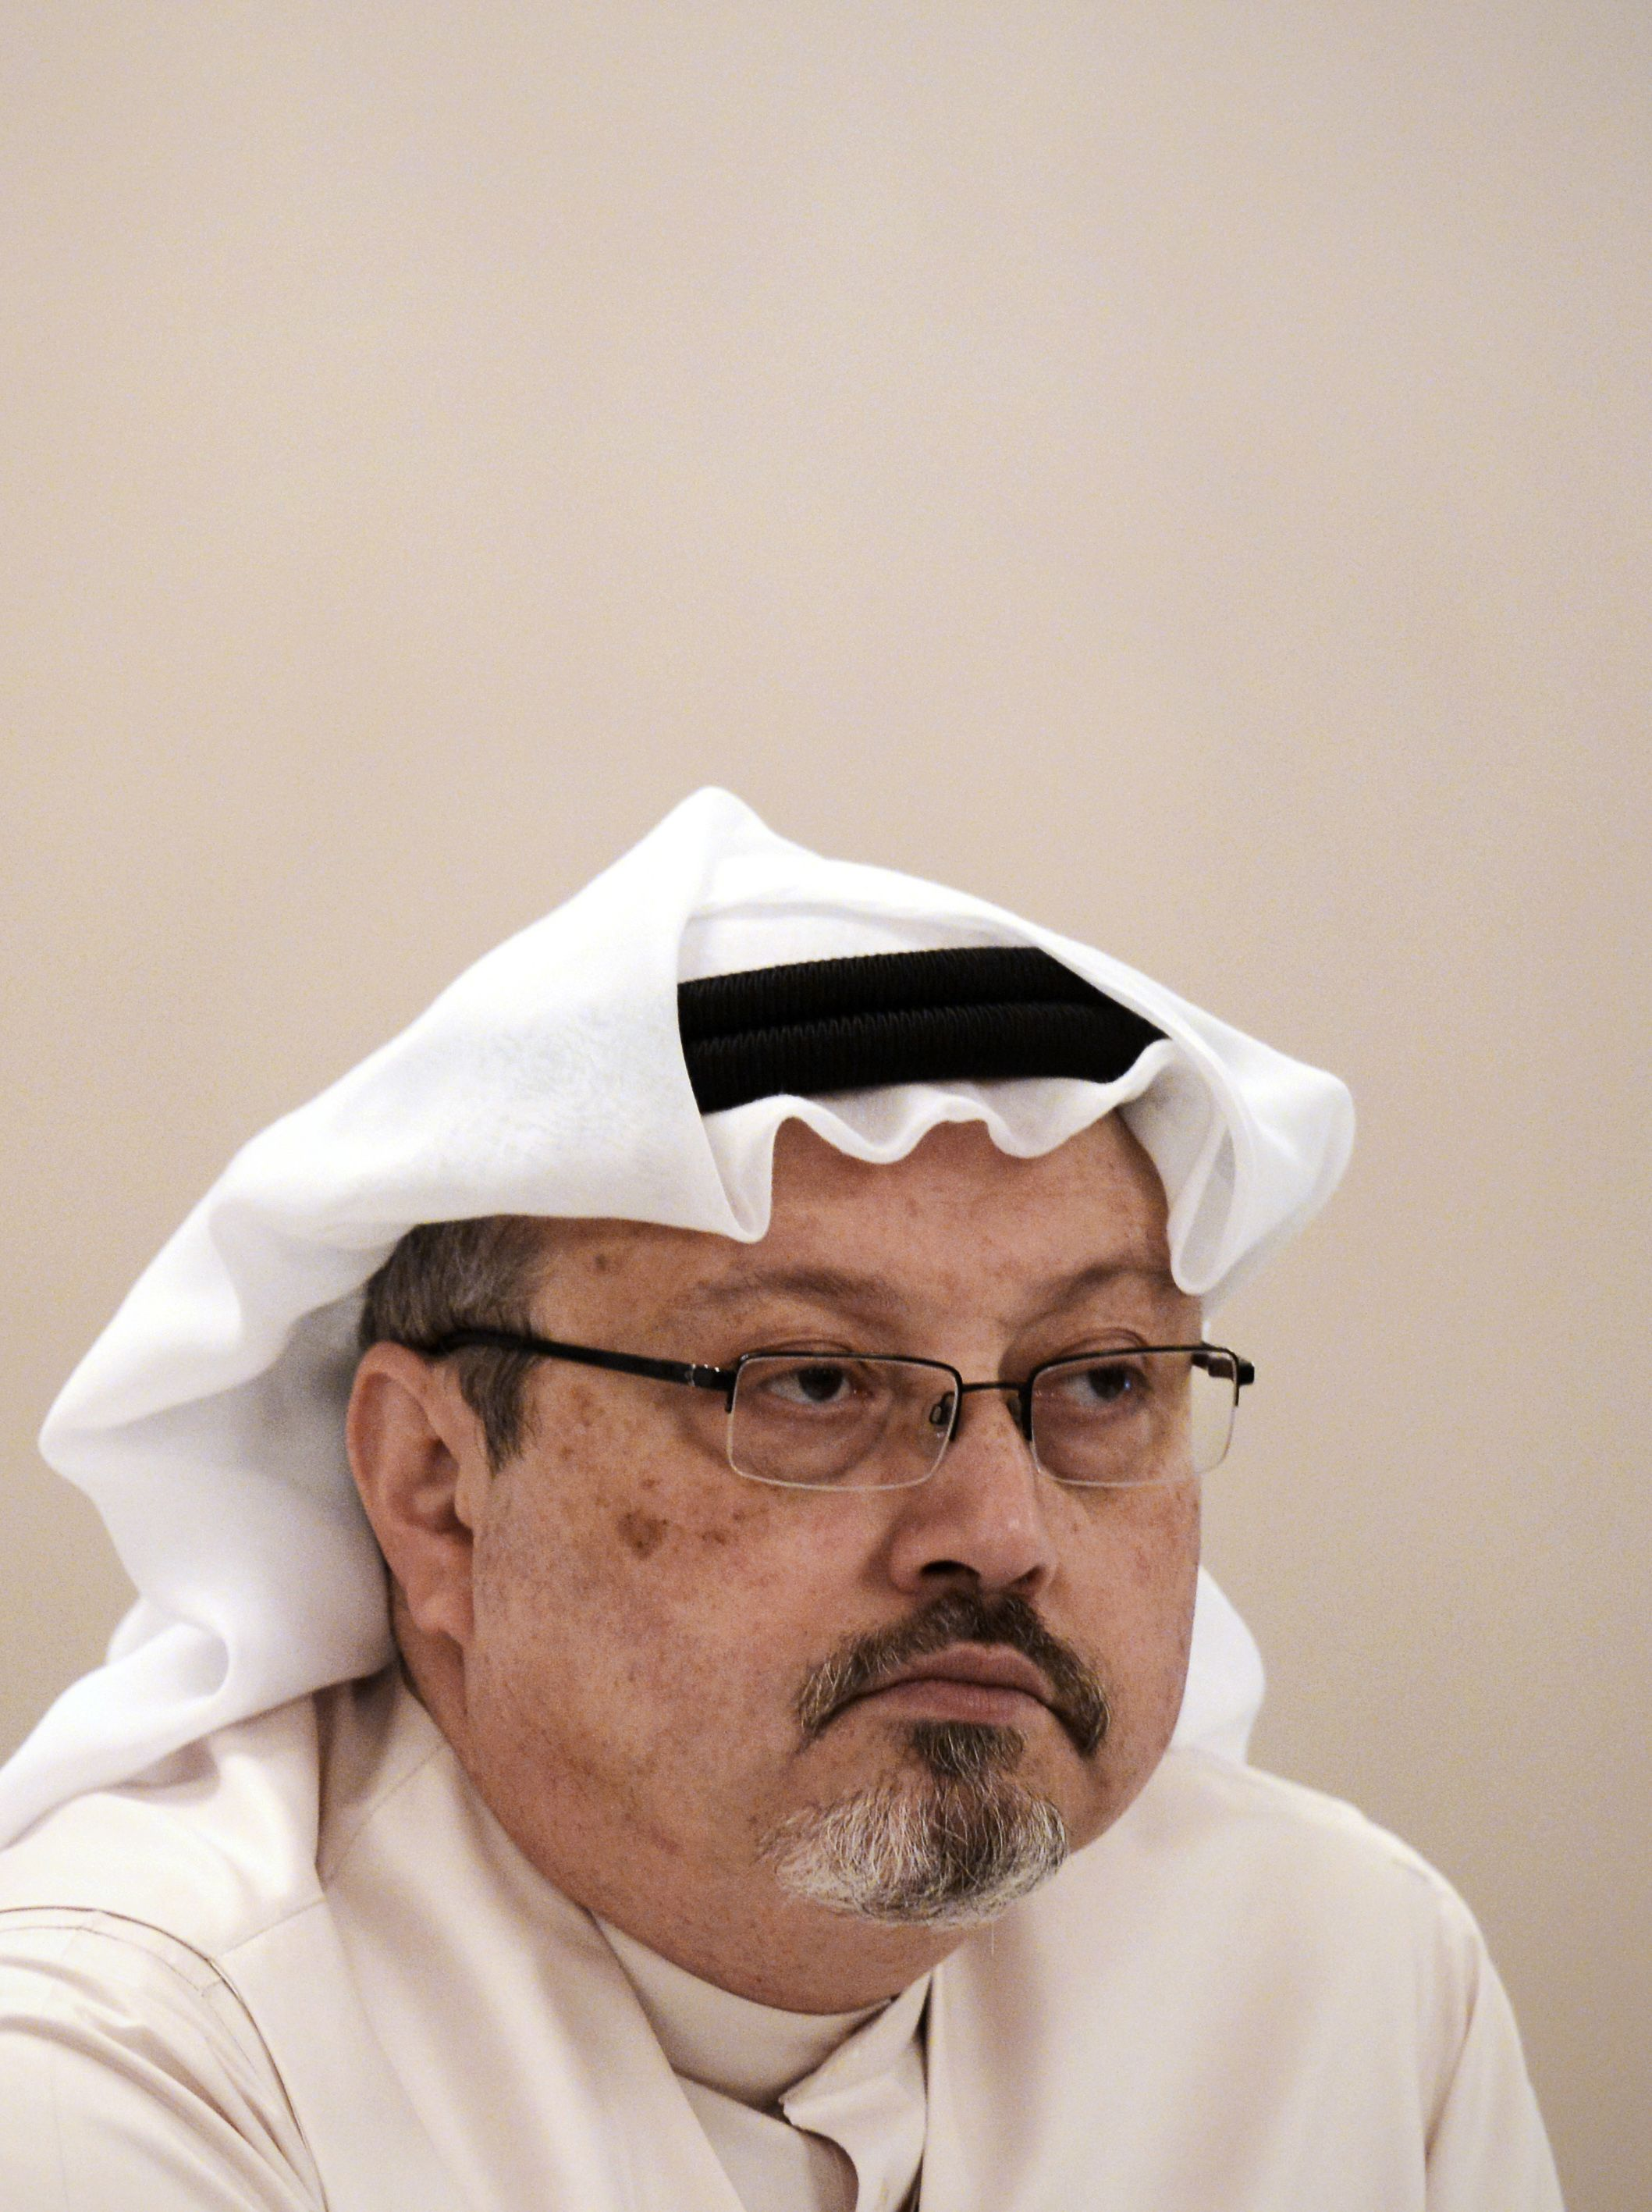 The Washington Post 's Jamal Khashoggi was killed inside Saudi Arabia's consulate in Istanbul in October 2018. The CIA determined that Mohammed bin Salman, Crown Prince of Saudi Arabia, ordered Khashoggi's assassination.